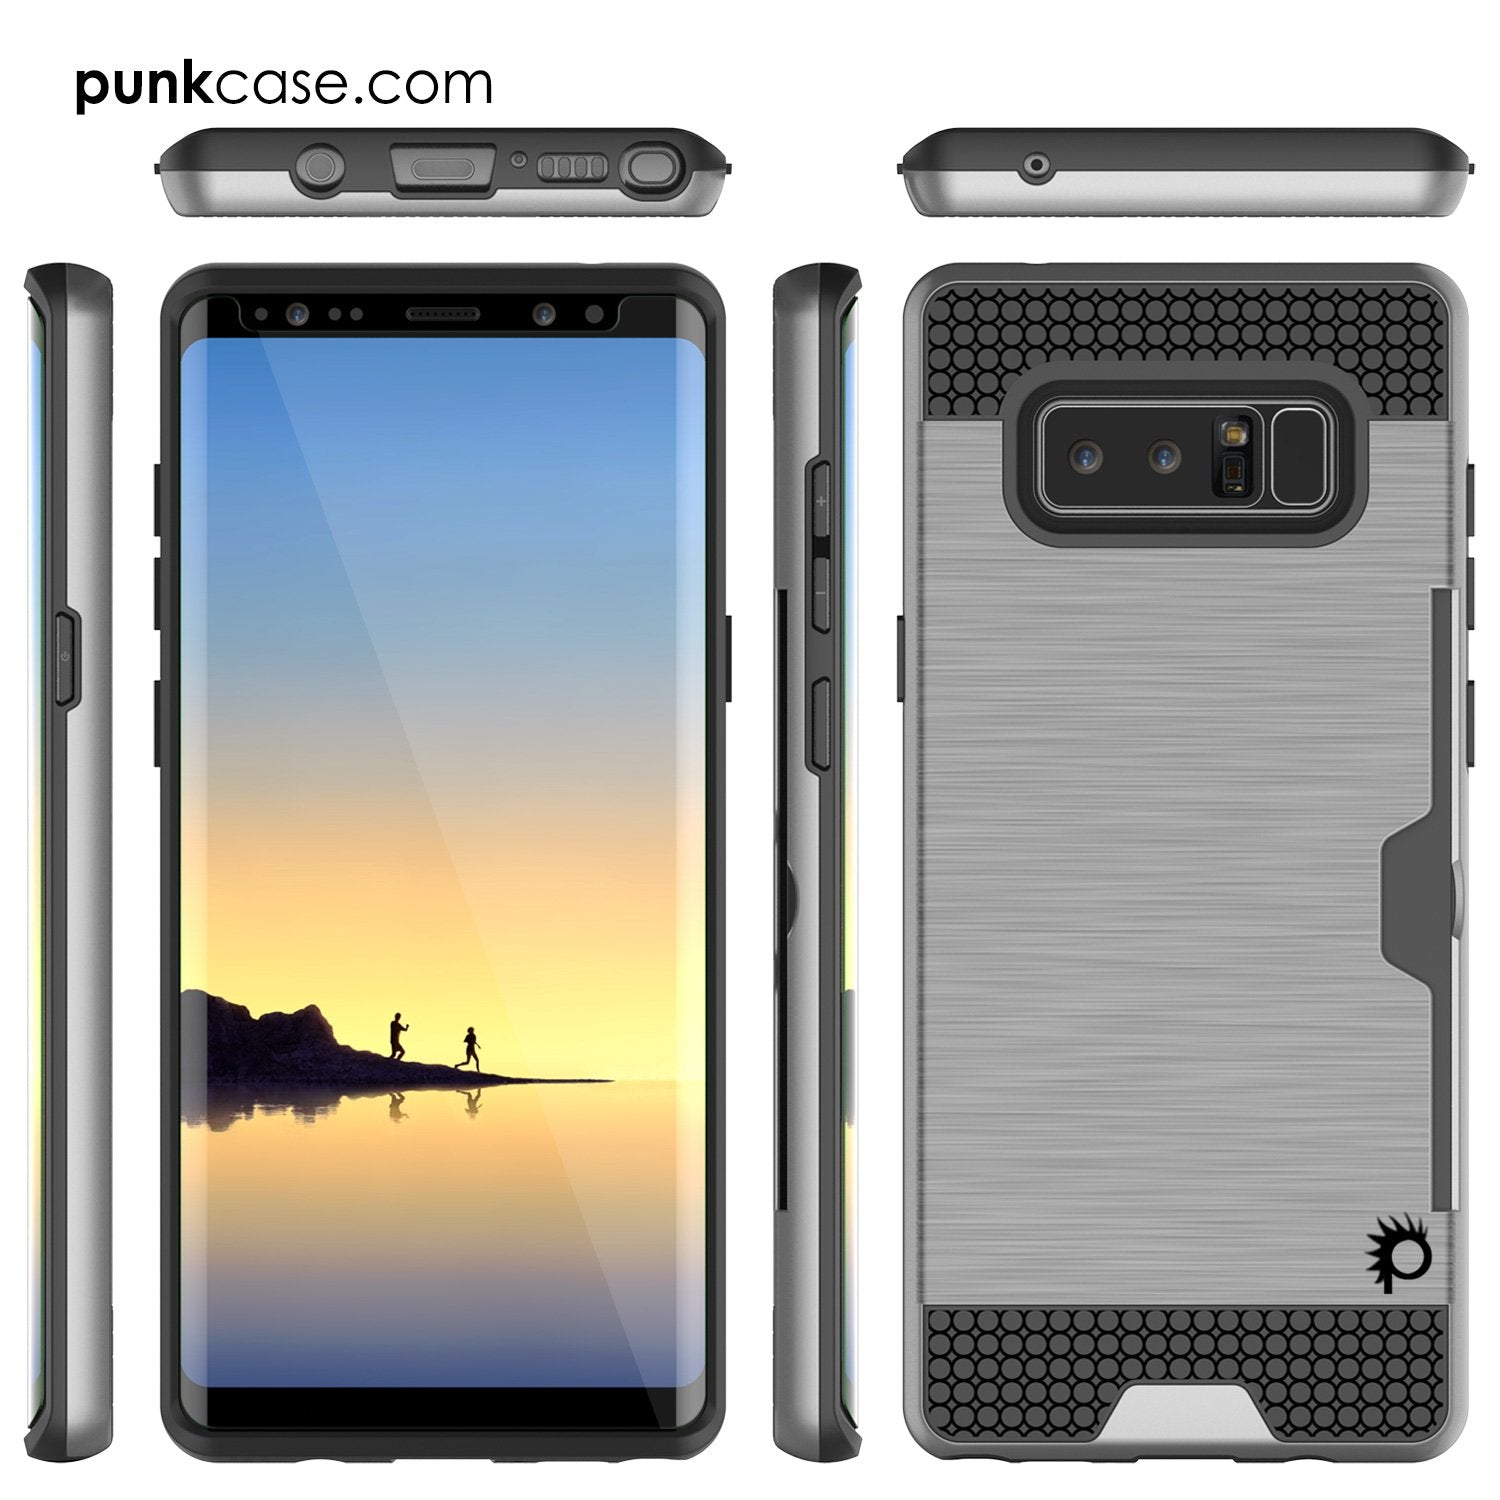 Galaxy Note 8 Case, PUNKcase [SLOT Series] [Slim Fit] Dual-Layer Armor Cover w/Integrated Anti-Shock System, Credit Card Slot [Grey] - PunkCase NZ